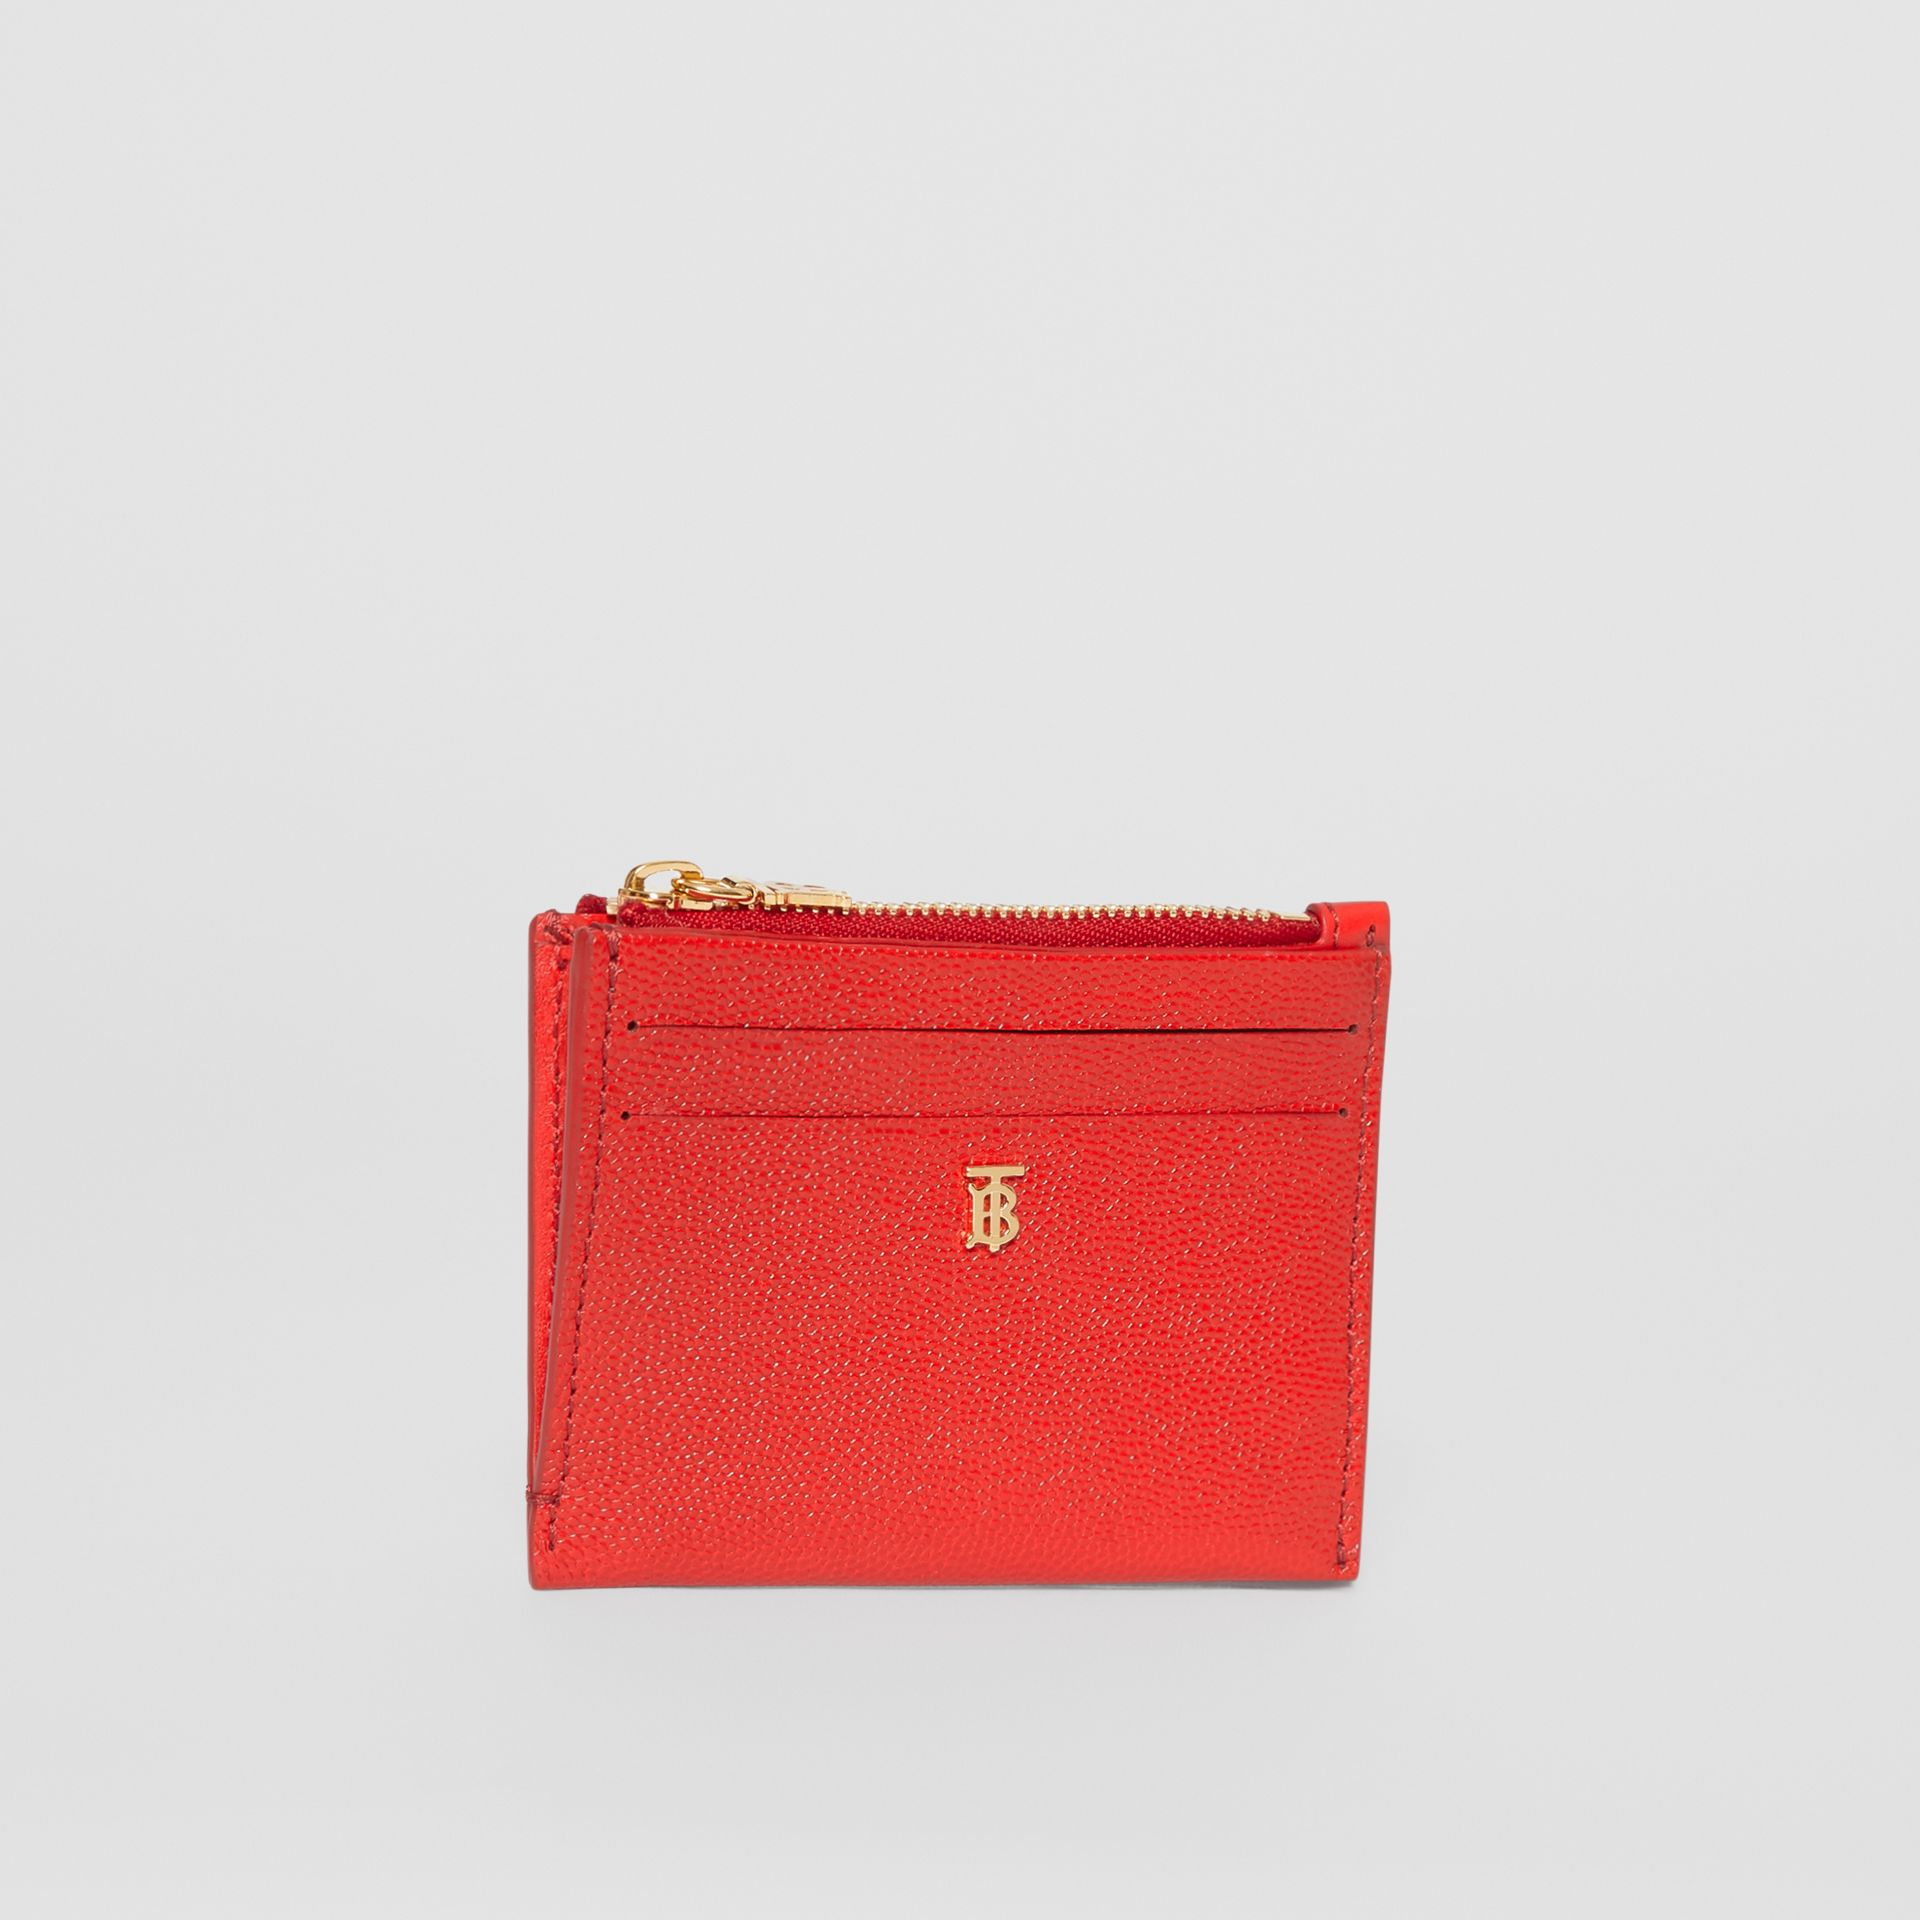 Monogram Motif Grainy Leather Zip Card Case in Bright Red - Women | Burberry Australia - gallery image 3